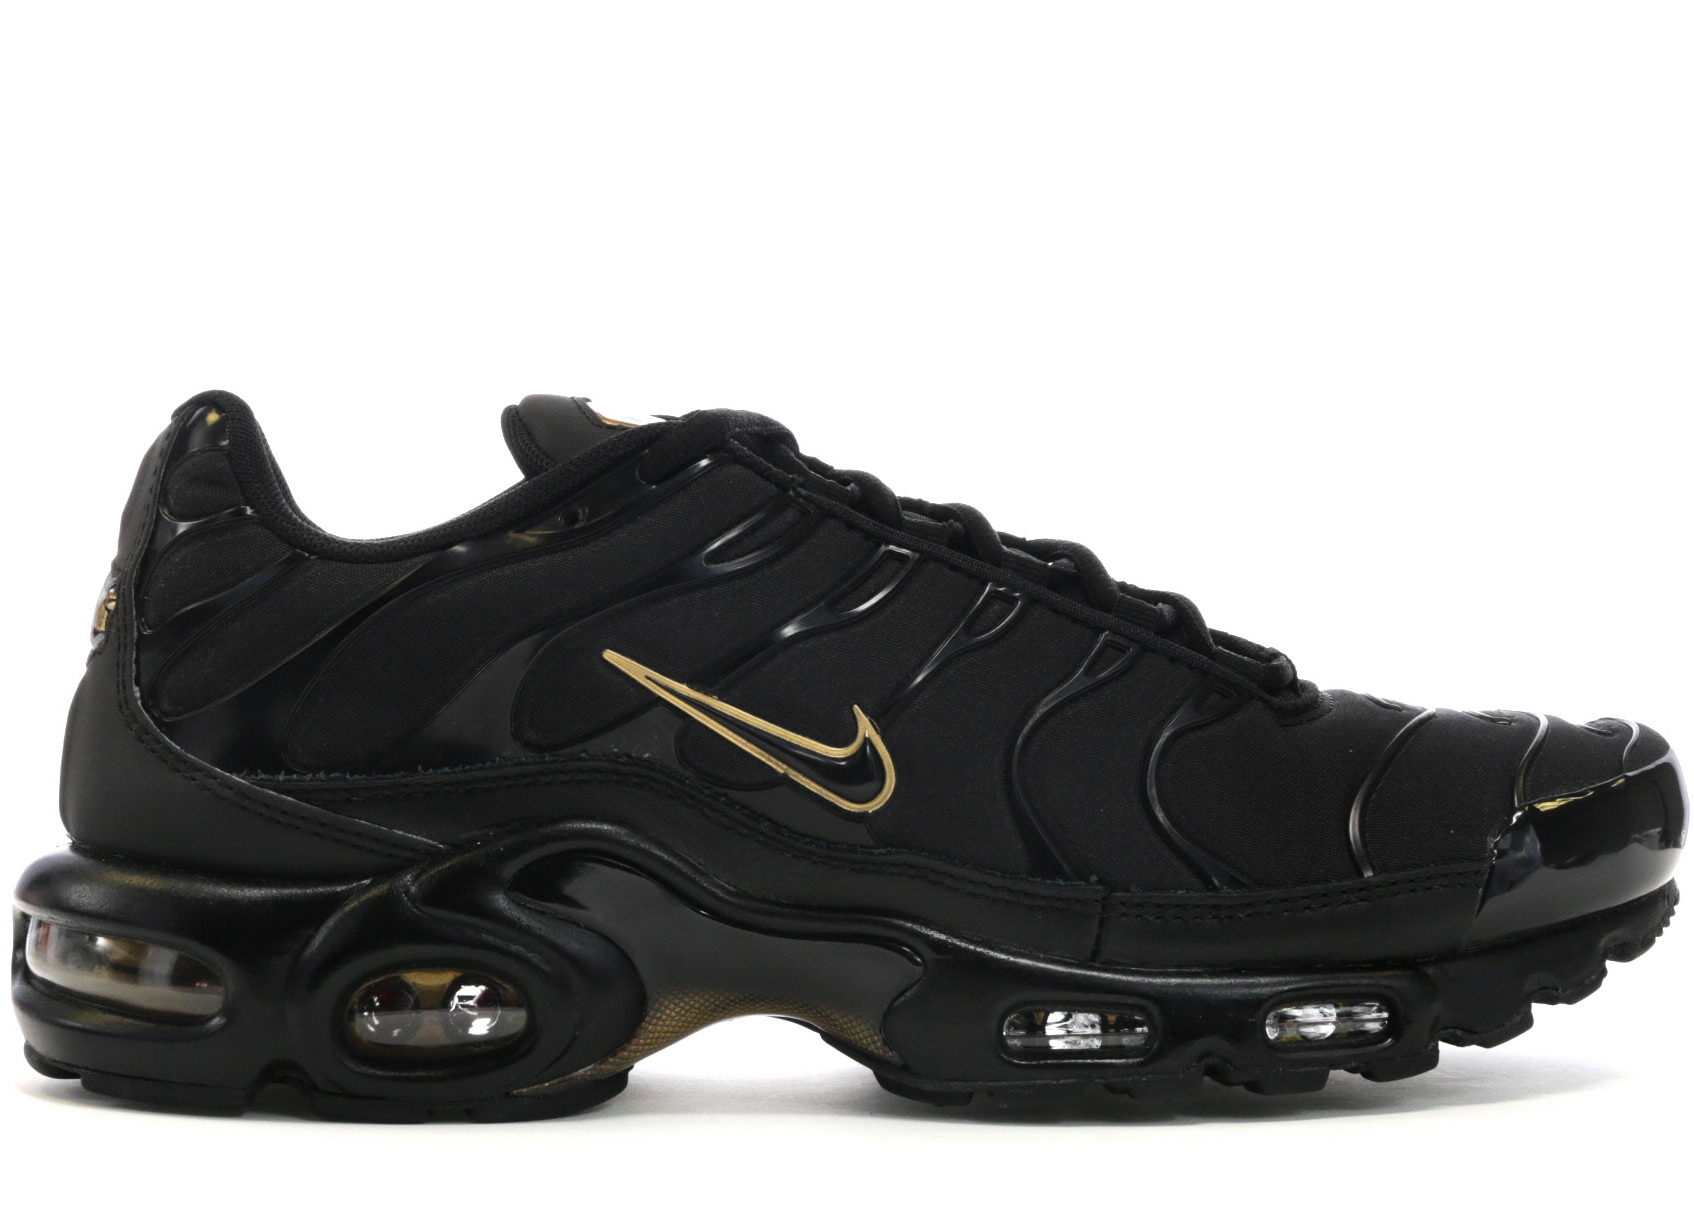 Nike Air Max Plus Black Metallic Gold